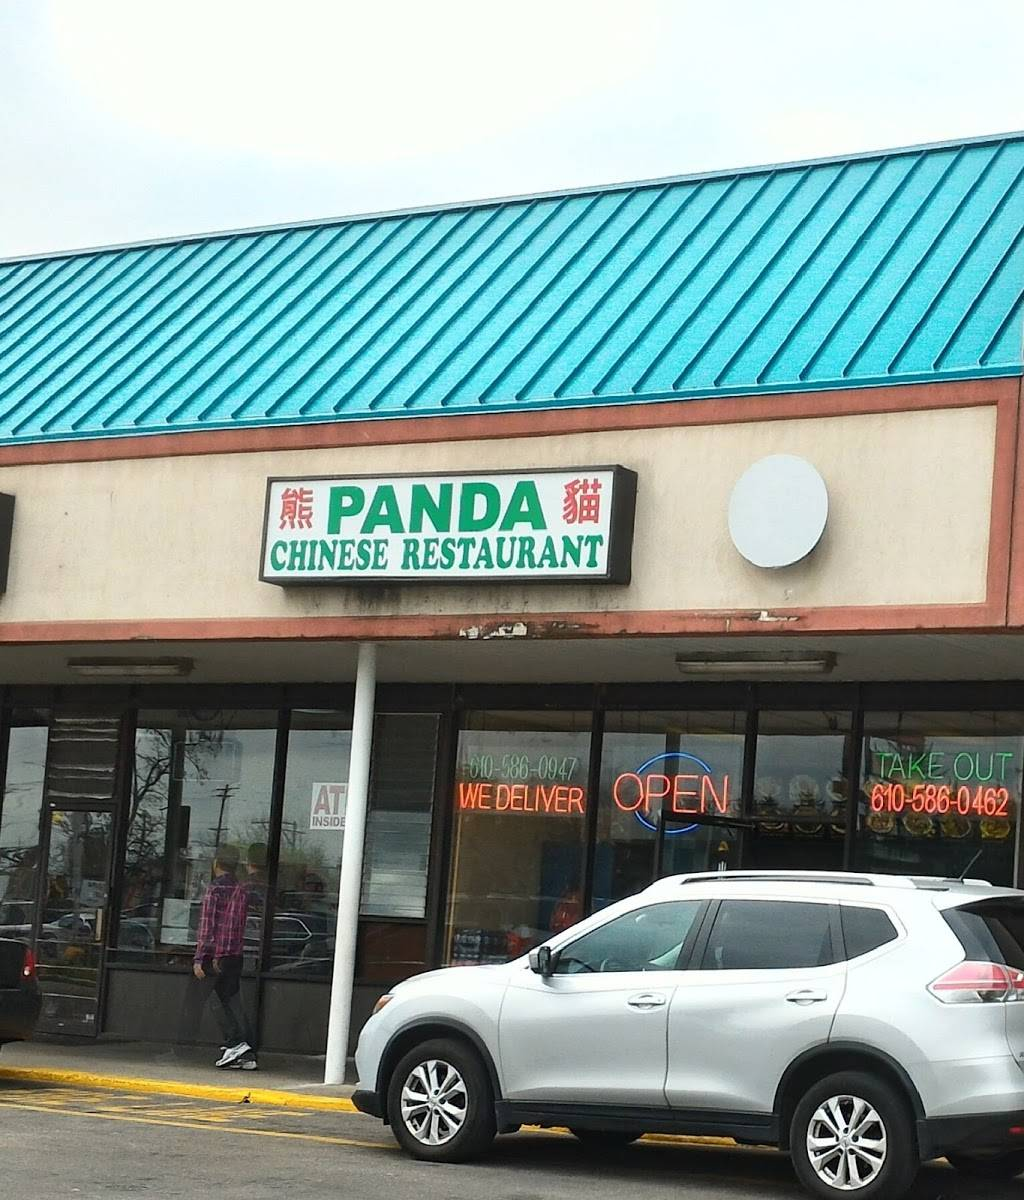 Panda Restaurant | meal delivery | 1116 Chester Pike, Sharon Hill, PA 19079, USA | 6105860462 OR +1 610-586-0462